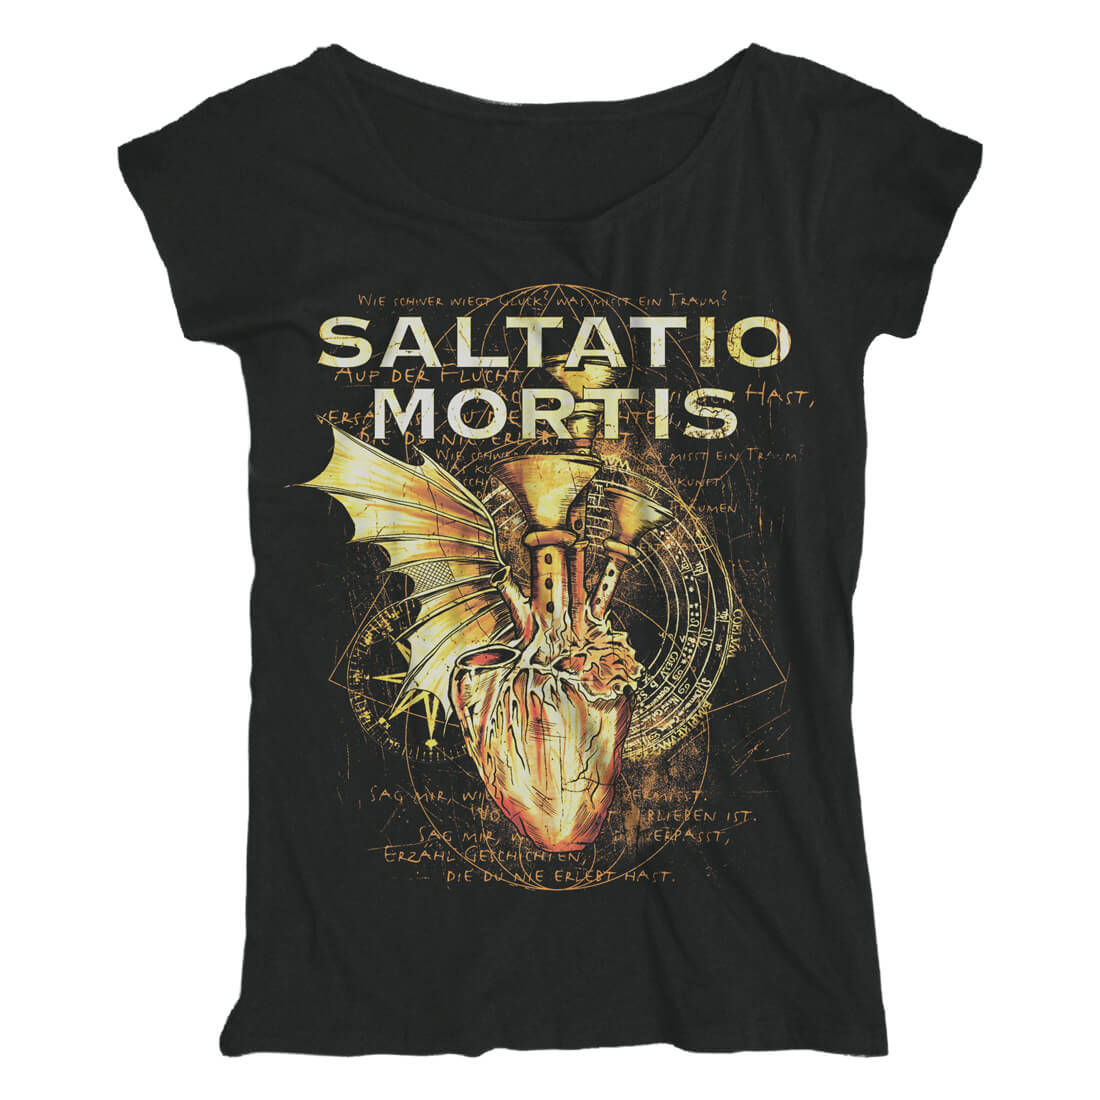 Pipe Heart von Saltatio Mortis - Loose Fit Girlie Shirt jetzt im Saltatio Mortis Shop